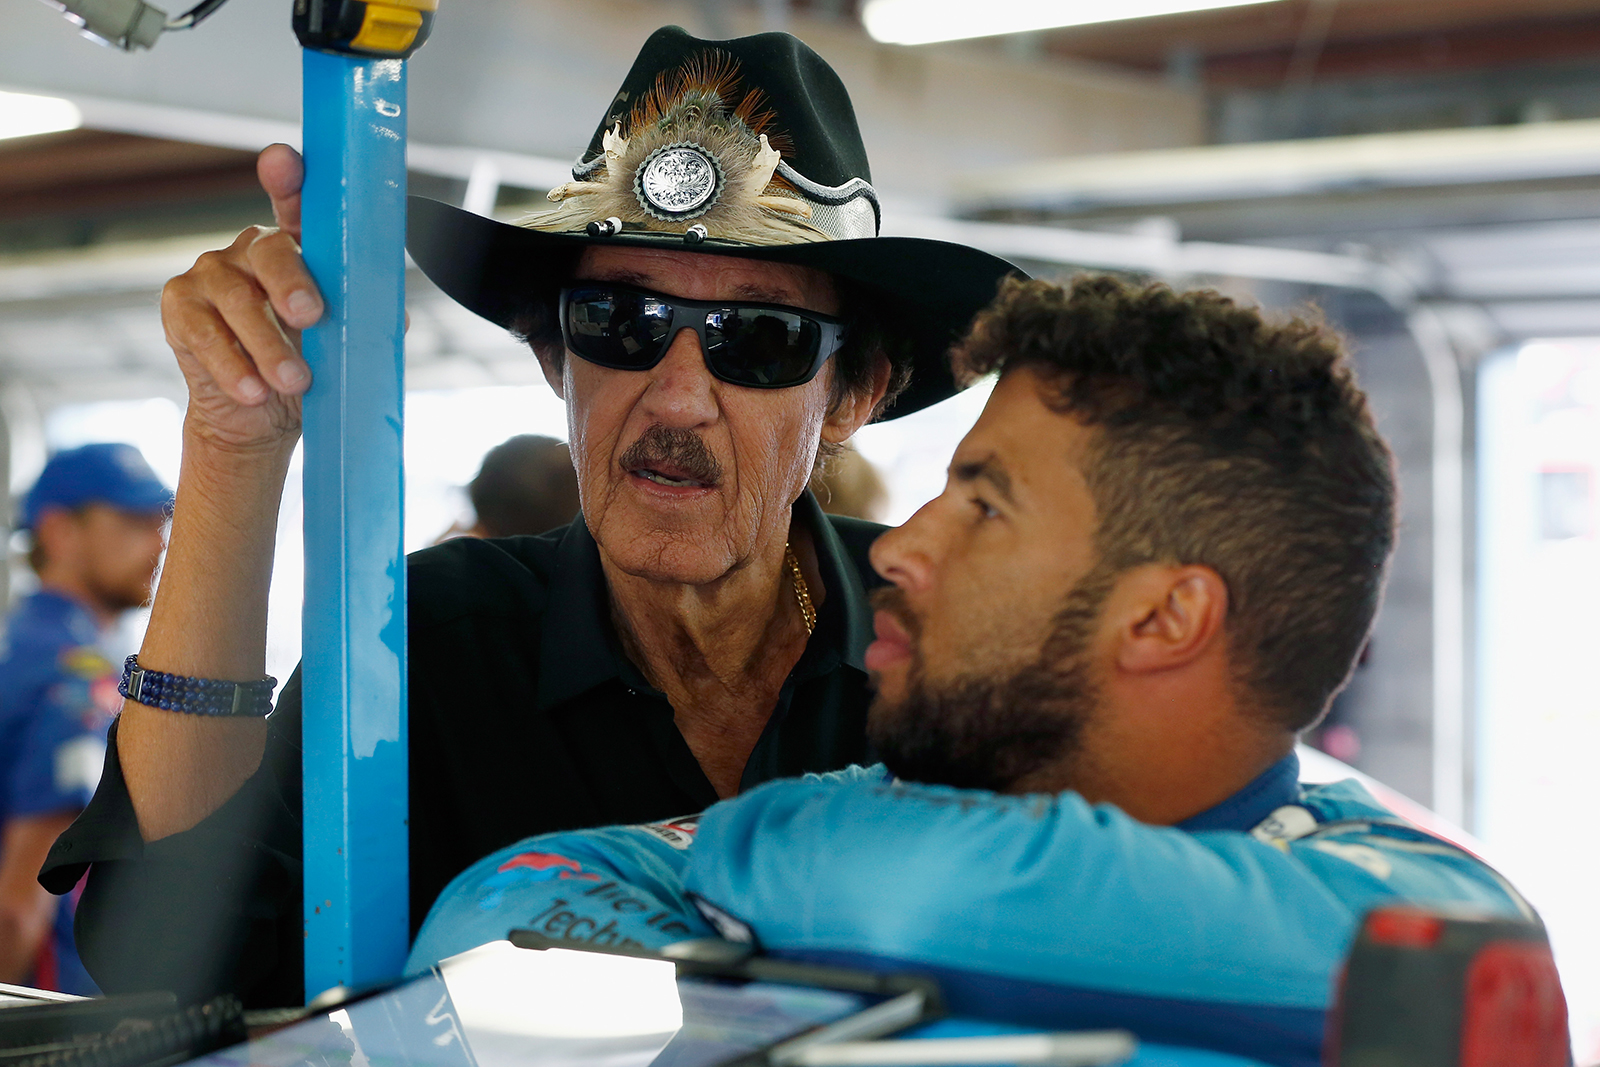 Bubba Wallace (right), driver of the #43 Medallion Bank/Petty's Garage Chevrolet, speaks with team owner and NASCAR Hall of Famer Richard Petty (left) at New Hampshire Motor Speedway in Loudon, New Hampshire on July 21, 2018.